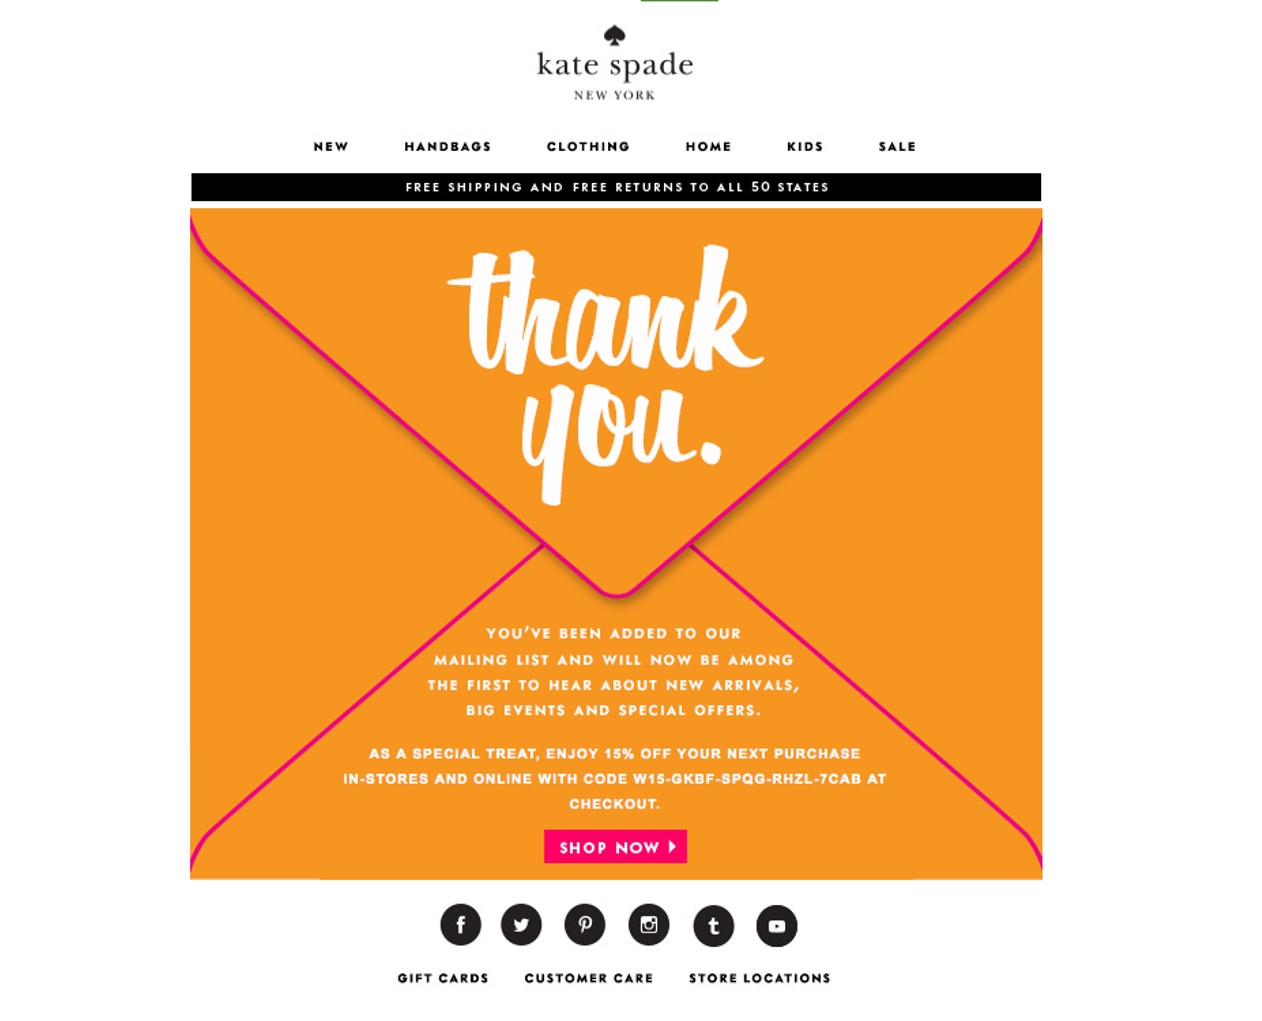 Welcome email from Kate Spade